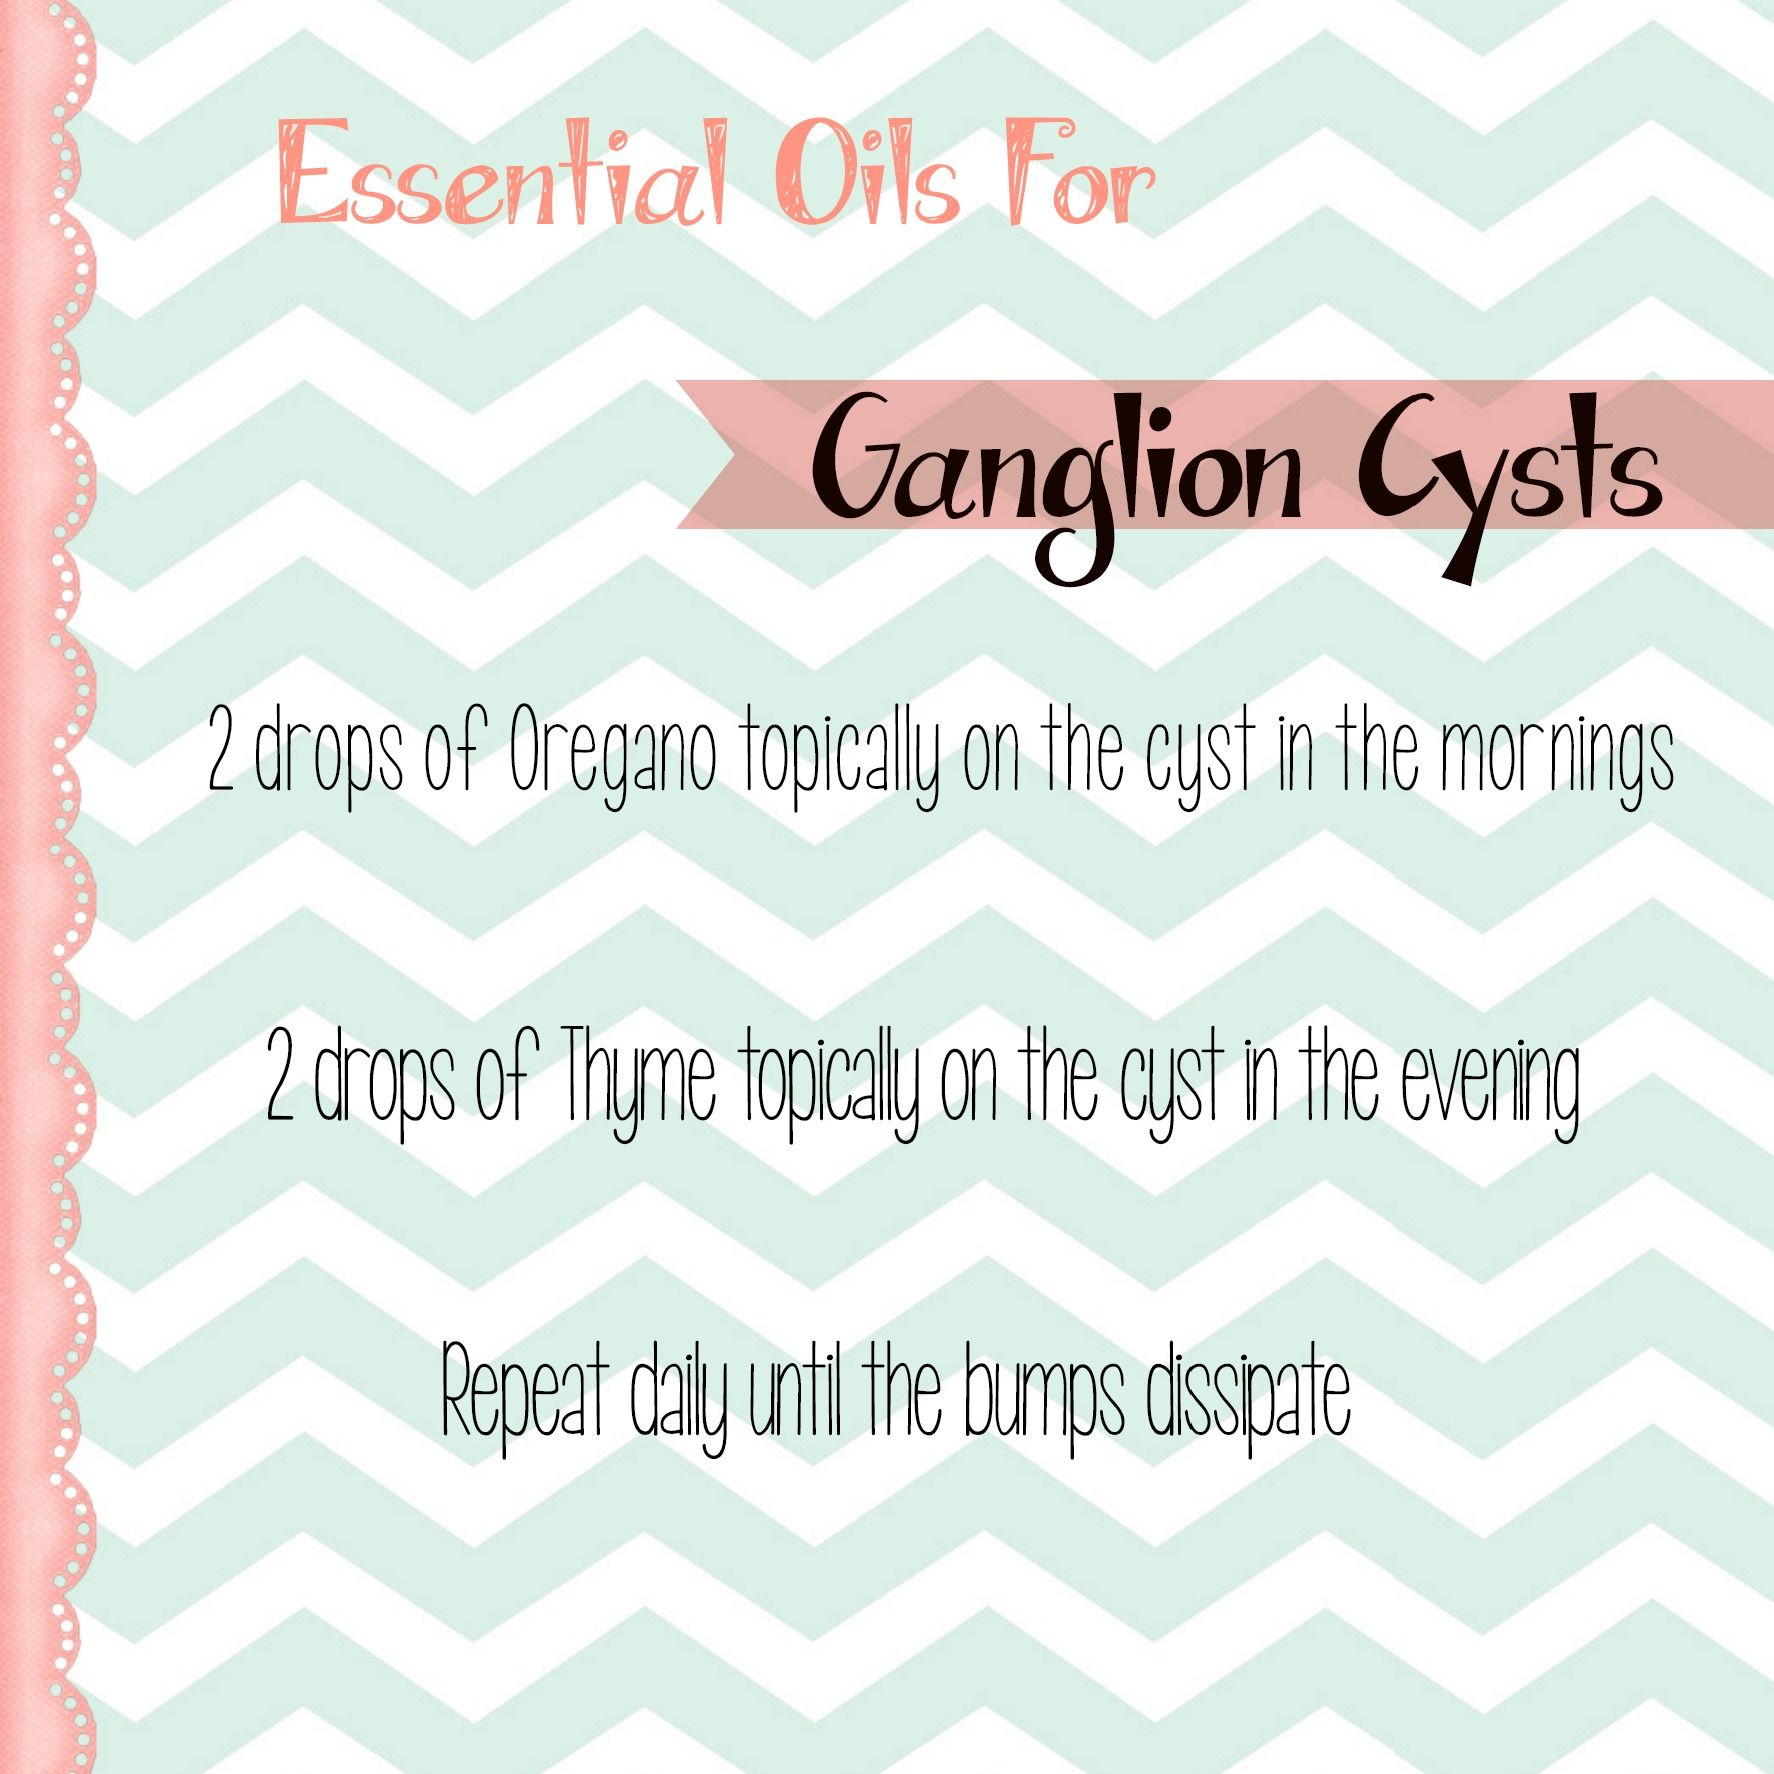 Essential Oils For Ganglion Cysts For More Eo Info